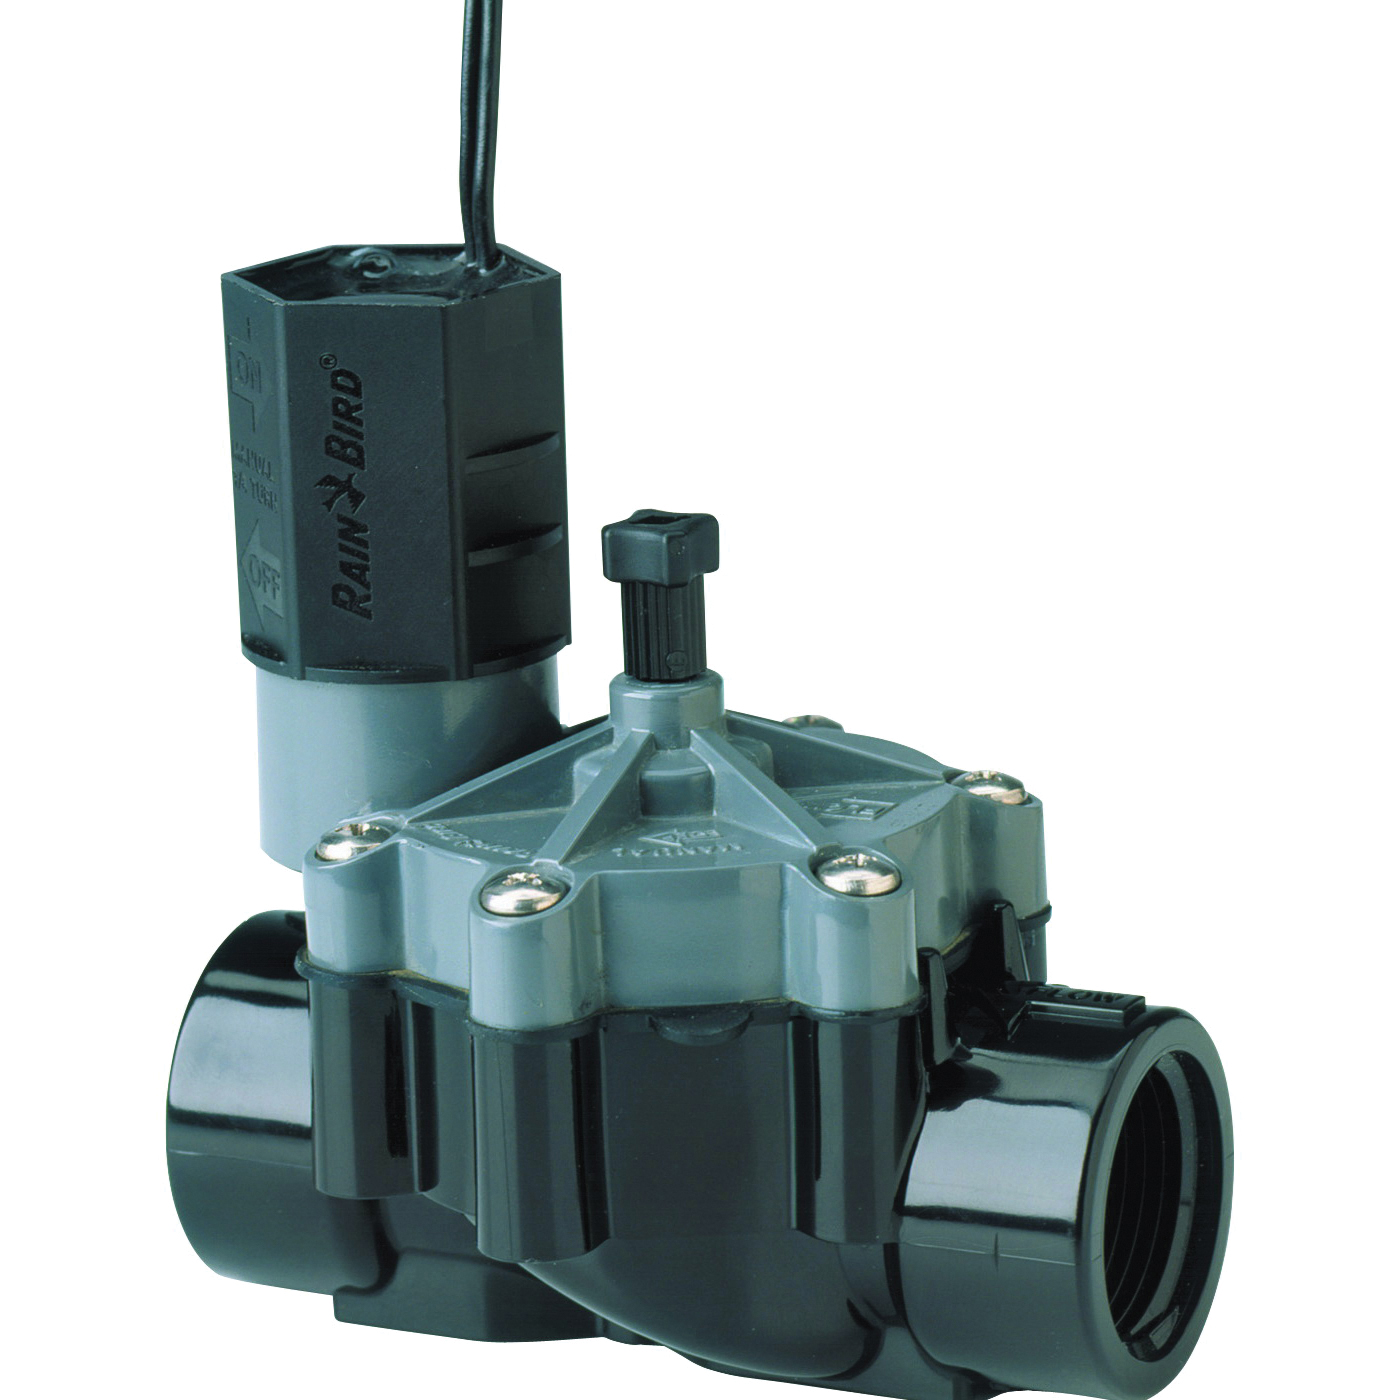 Picture of Rain Bird CP075 Irrigation Valve with Flow Control, Plastic Body